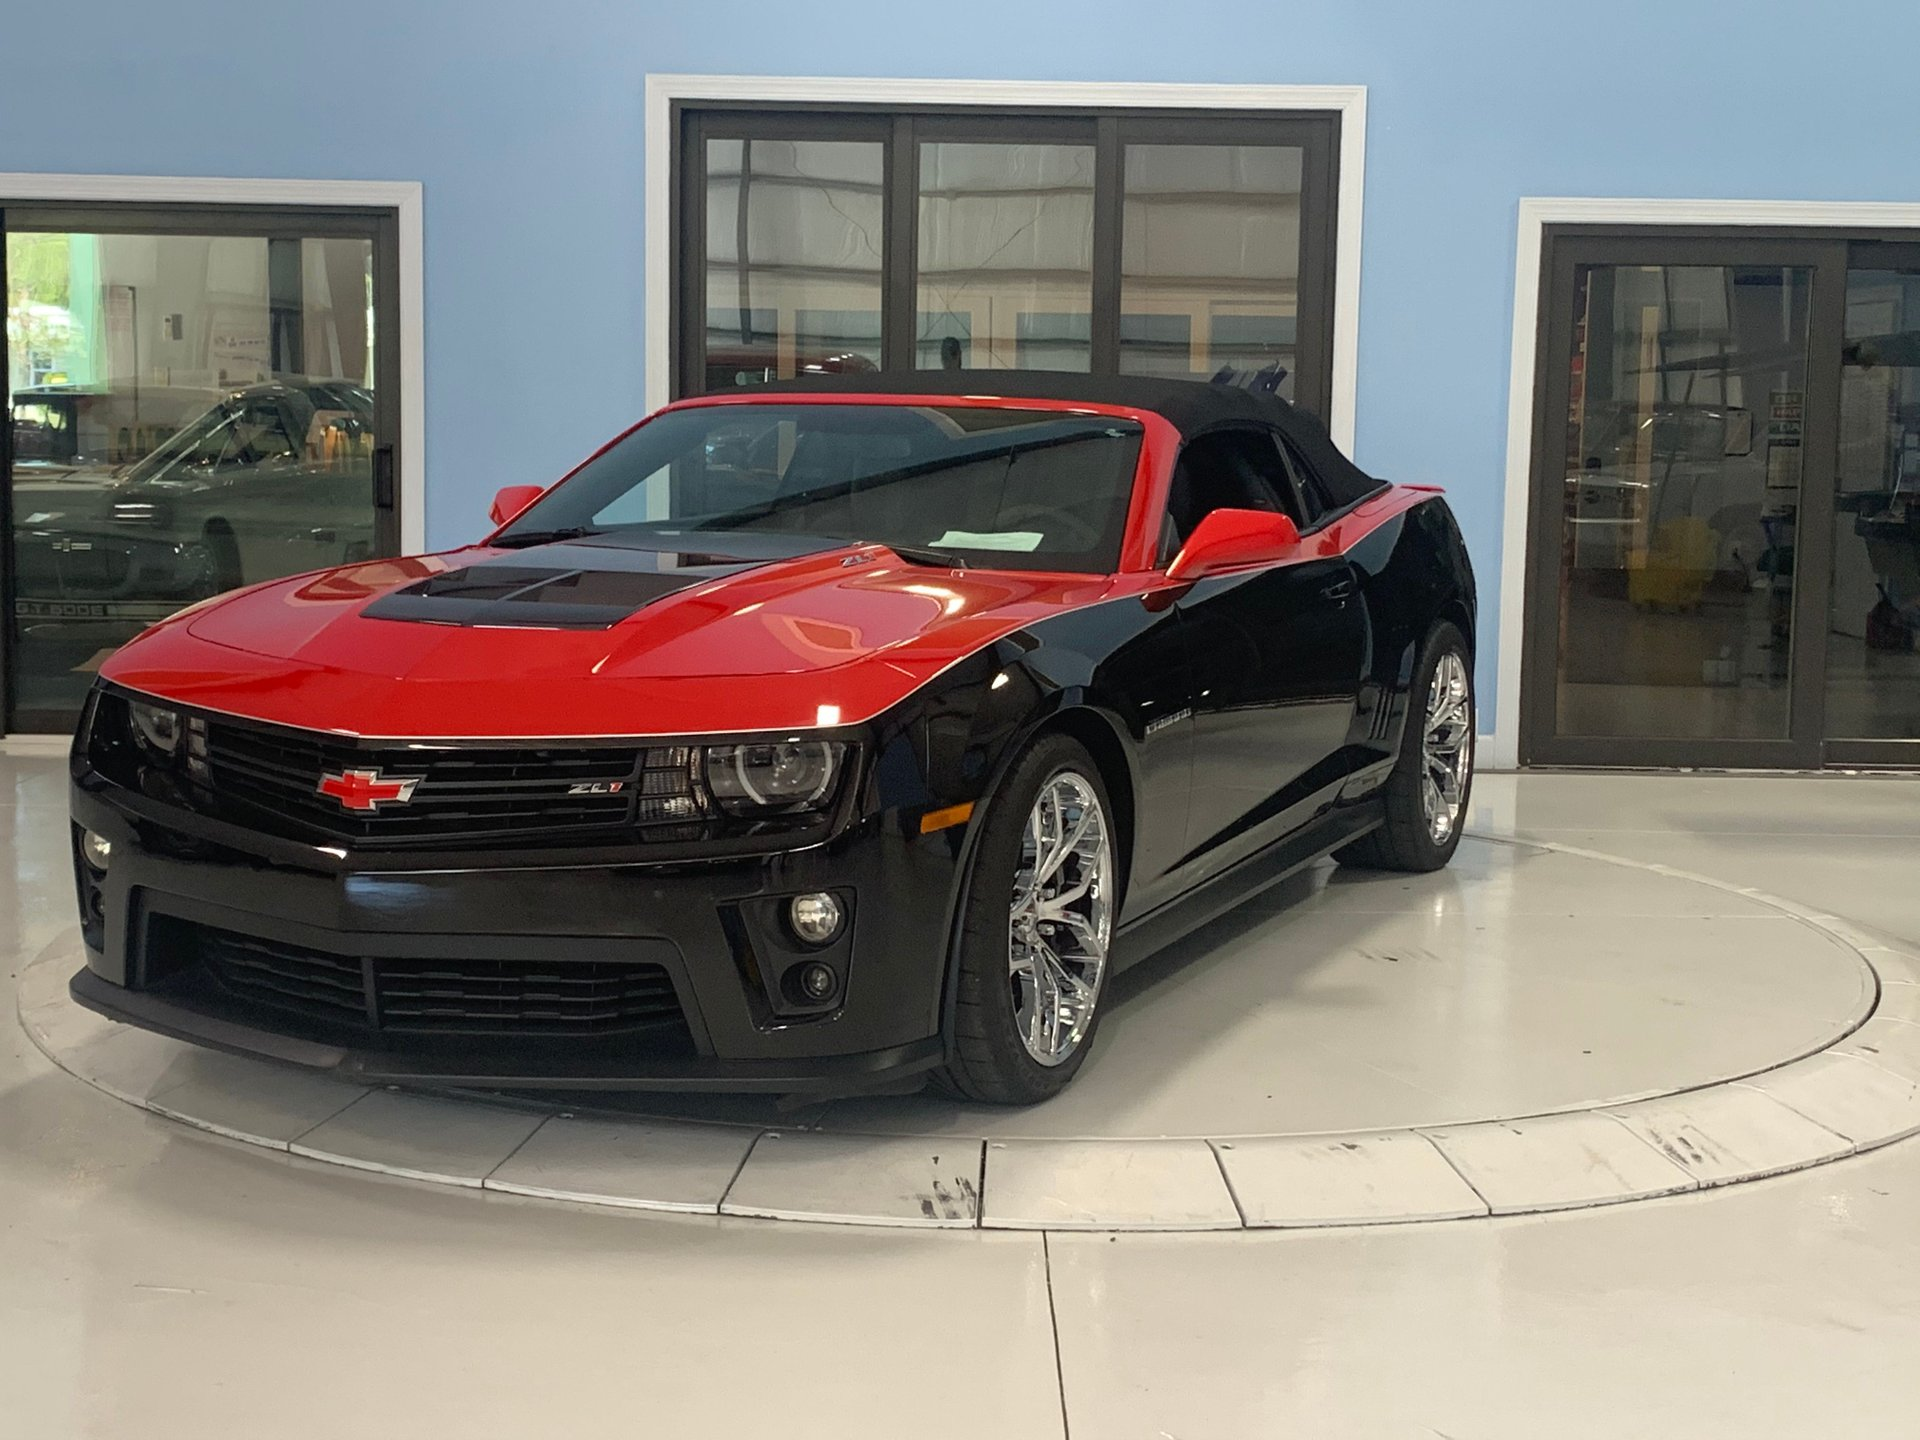 2013 Chevrolet Camaro | Classic Cars & Used Cars For Sale ... 2013 Camaro Zl1 Supercharged Specs